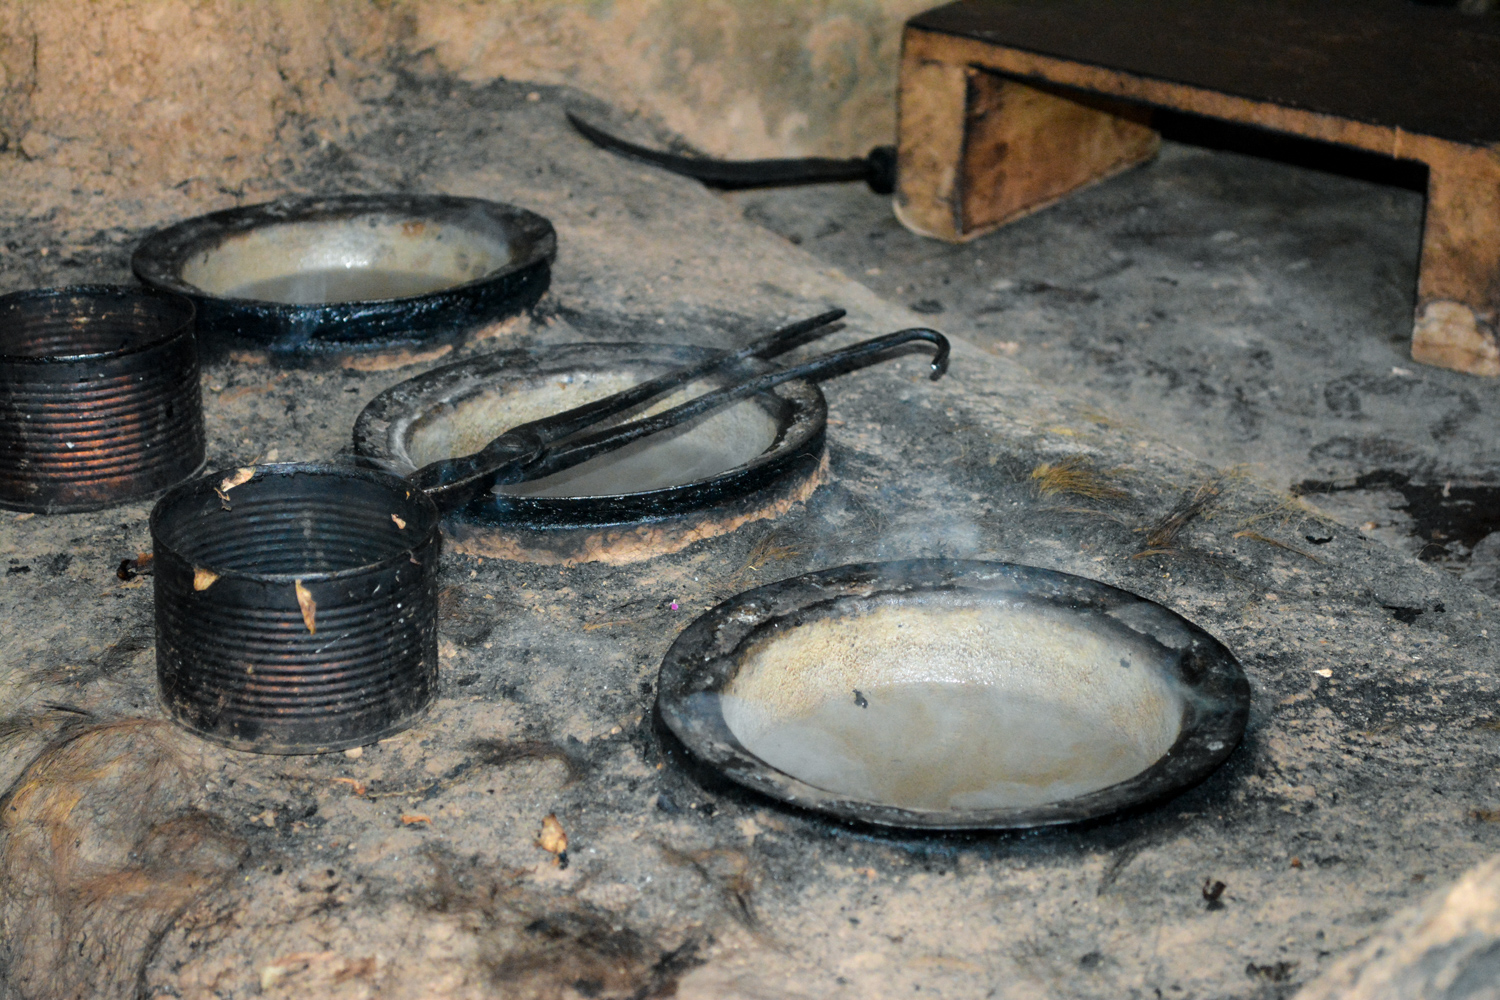 The tops of the cauldrons that are inset in the stove.